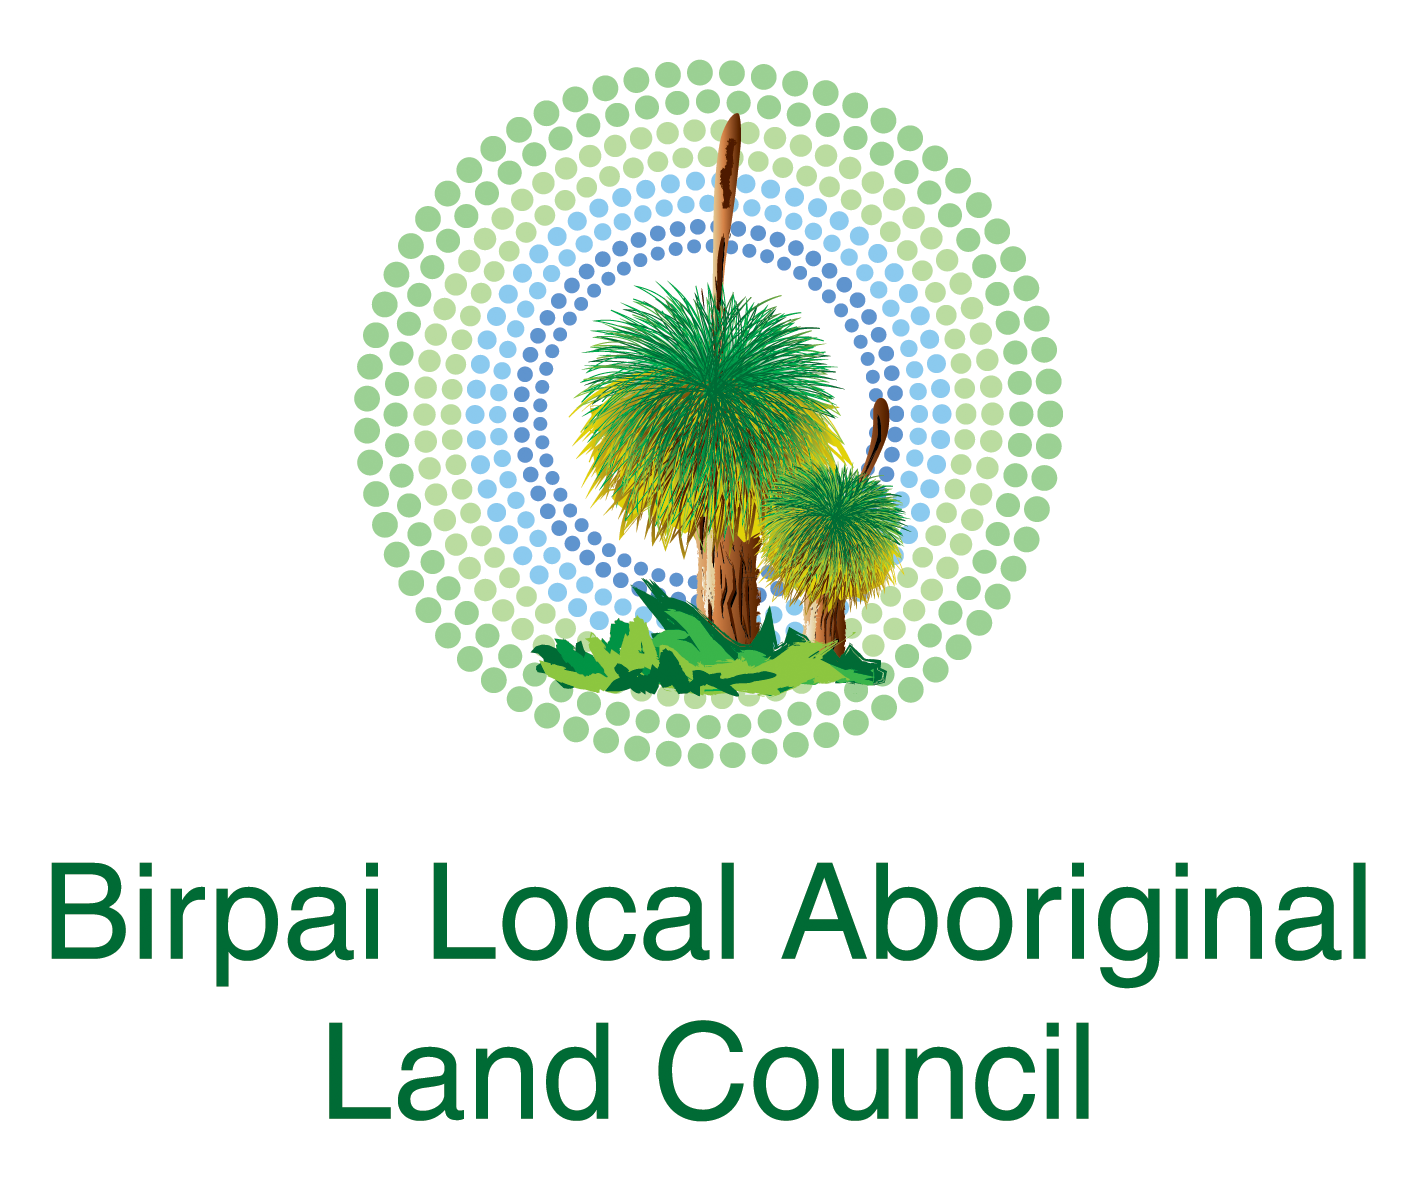 Birpai Land Council